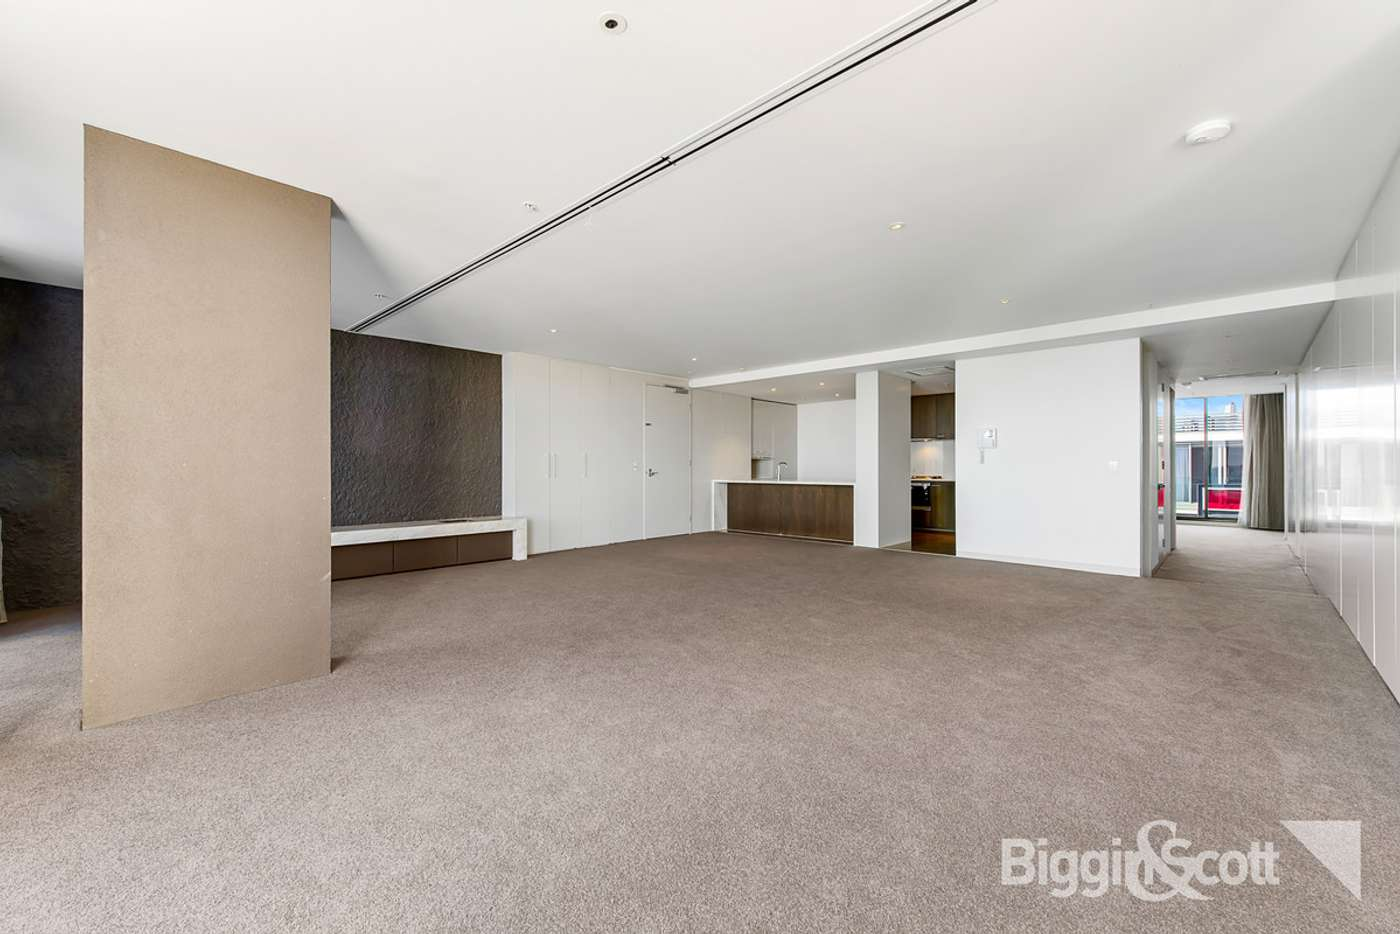 Fifth view of Homely apartment listing, 502/2 Rouse Street, Port Melbourne VIC 3207